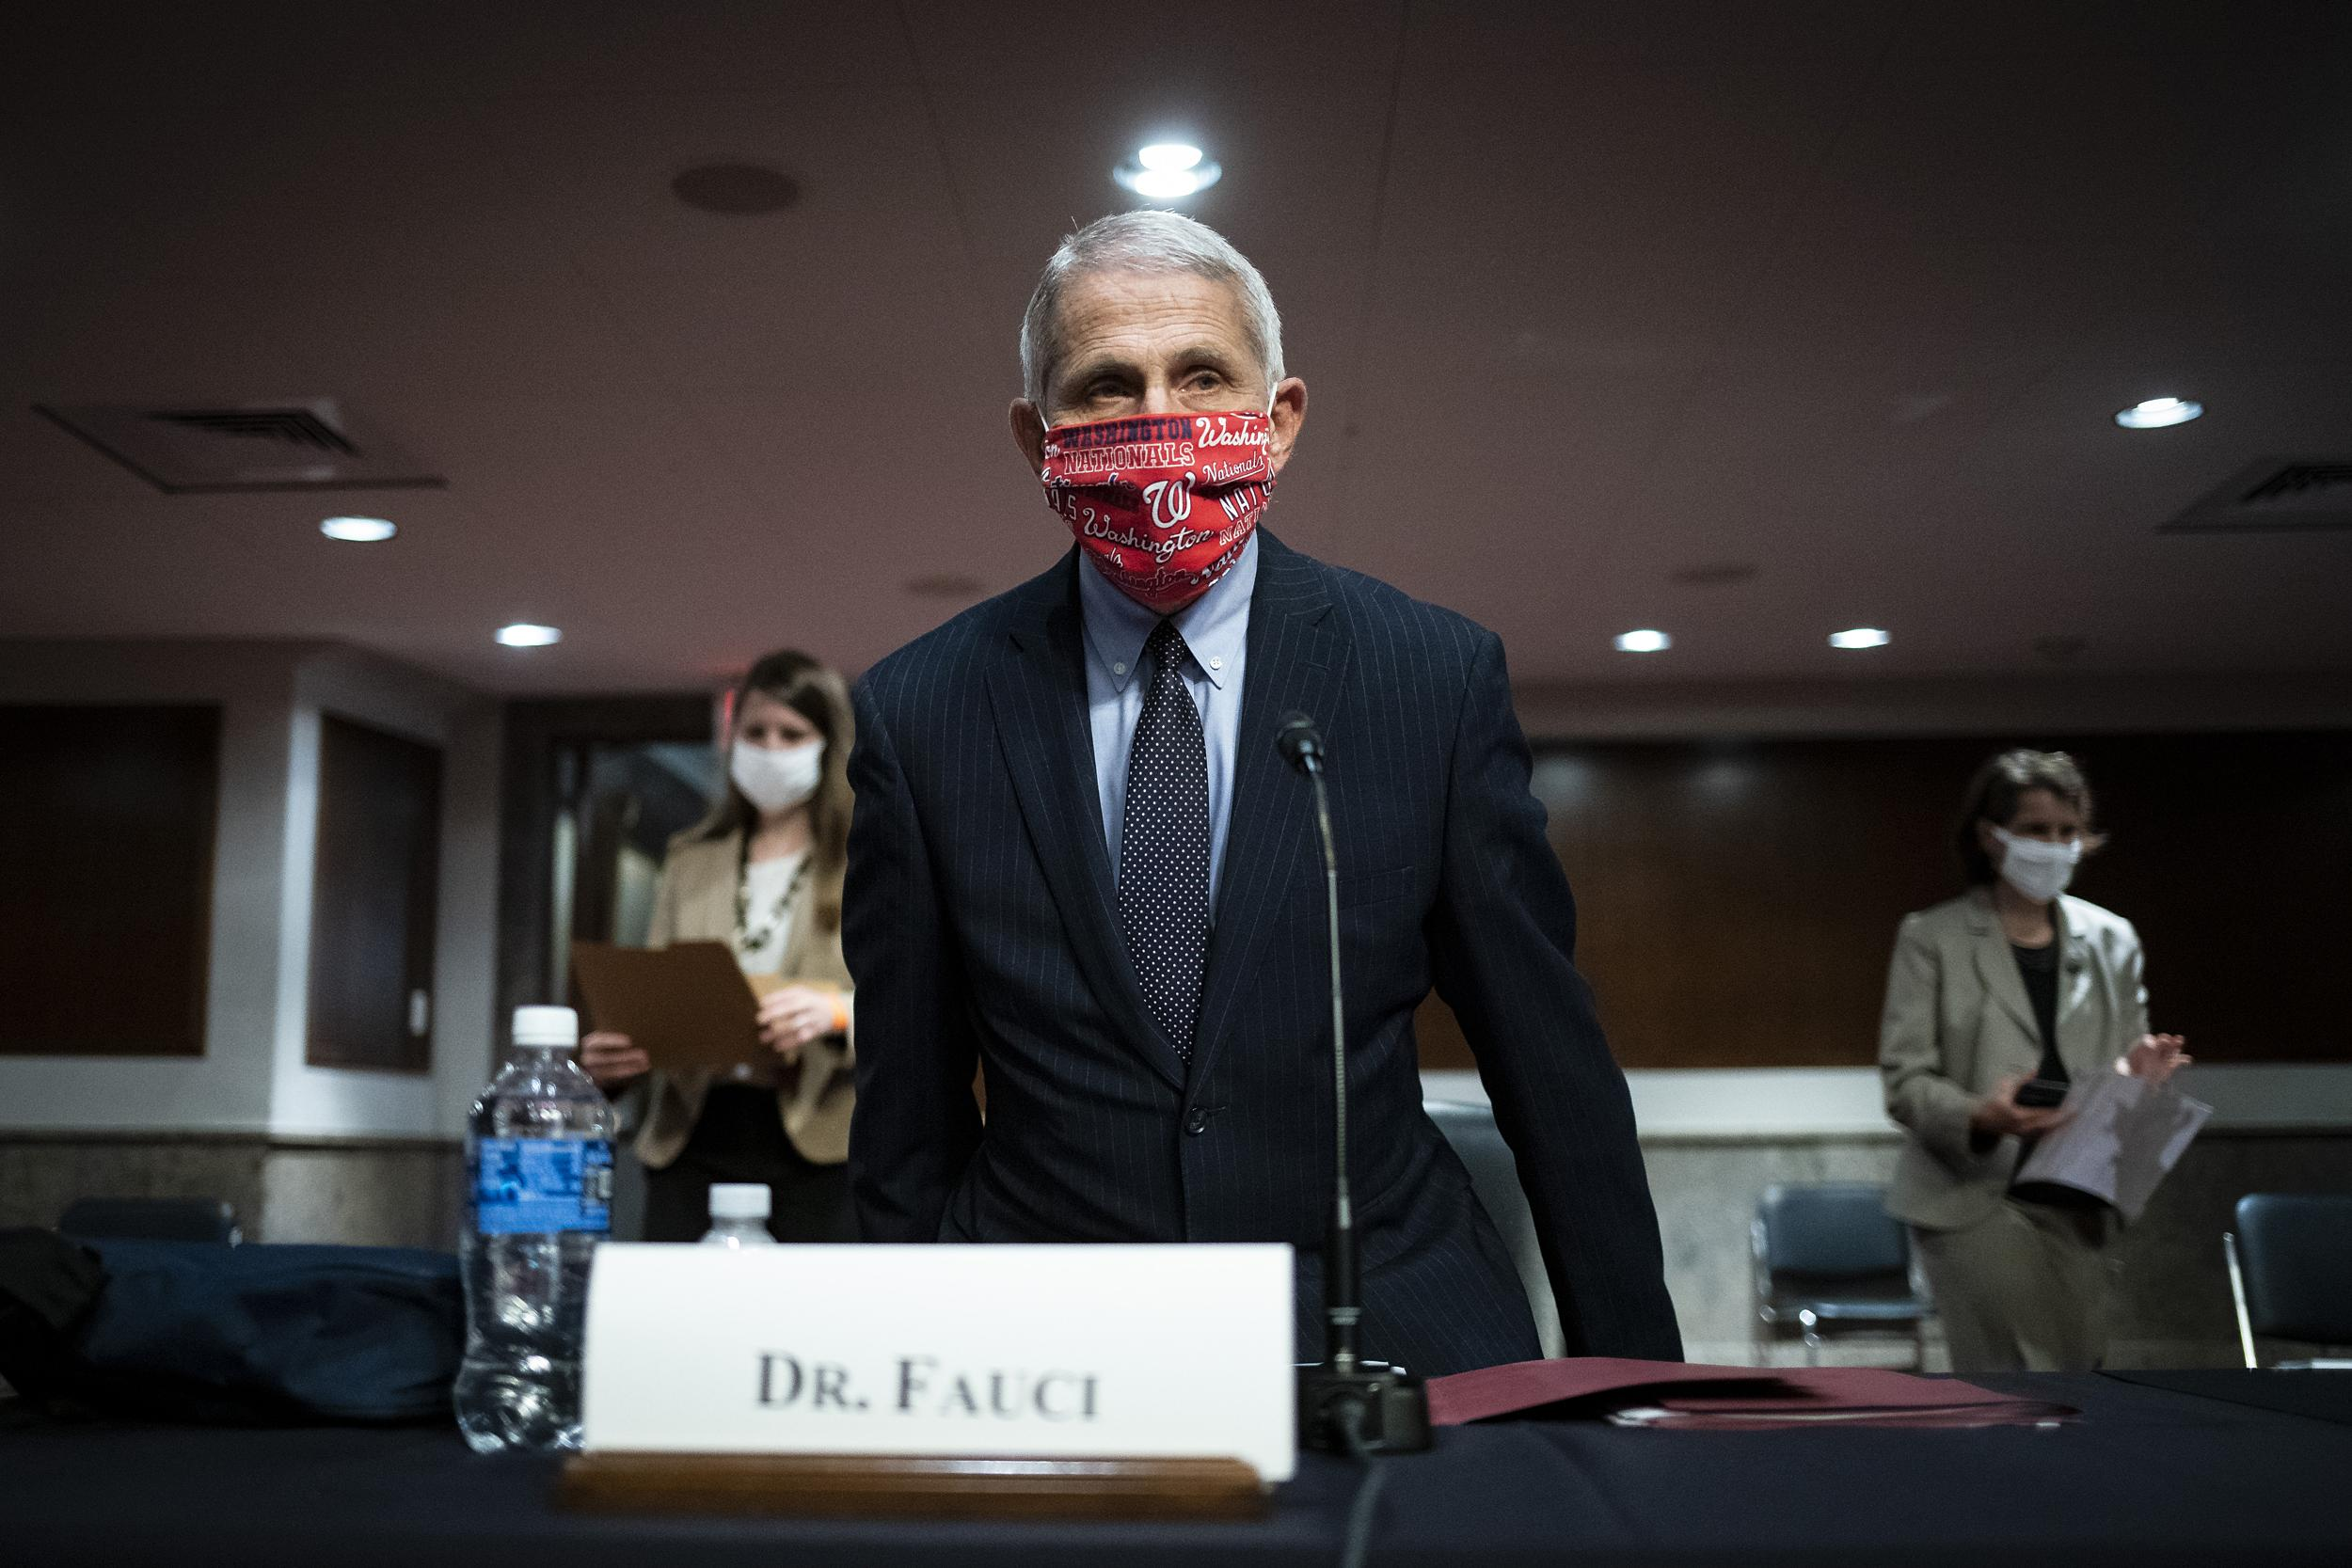 Fauci disagrees with Trump on COVID-19, shares worrying statistics